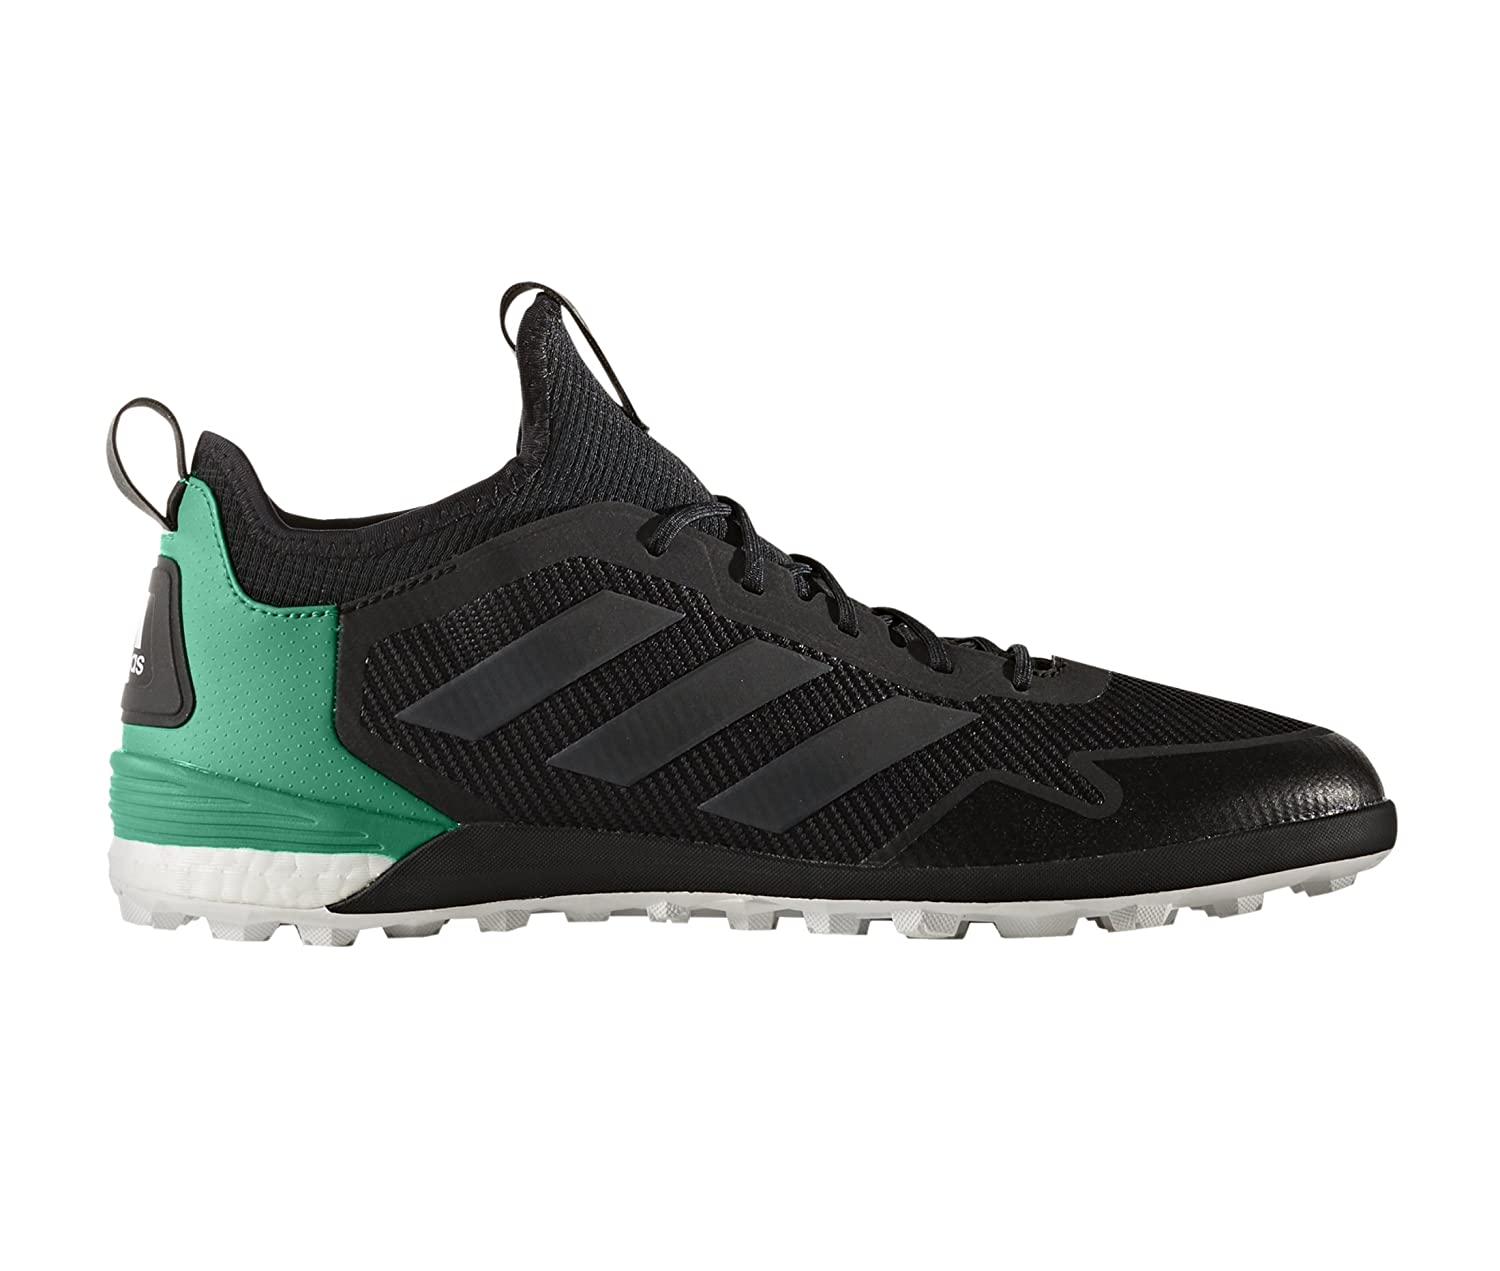 Adidas Ace Tango 17.1 TF Les Chaussures de Formation de Football Homme